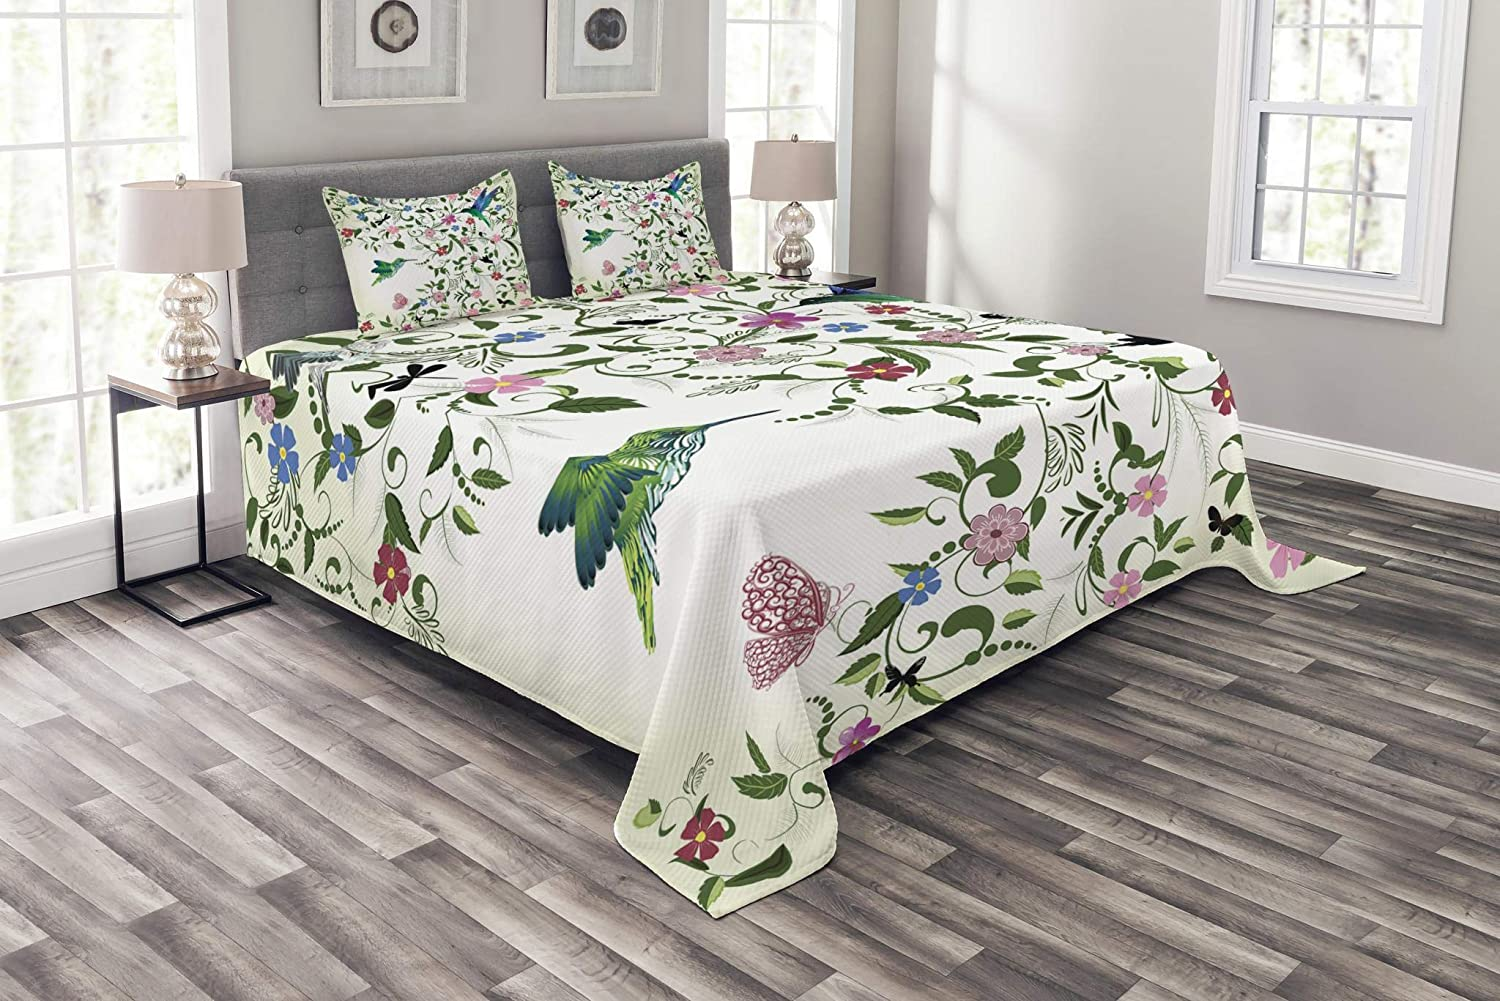 Lunarable Hummingbird Bedspread Set King Size, Swirled Leaves with Blossoming Flowers Abstract Coming of The Spring Theme, Decorative Quilted 3 Piece Coverlet Set with 2 Pillow Shams, Multicolor